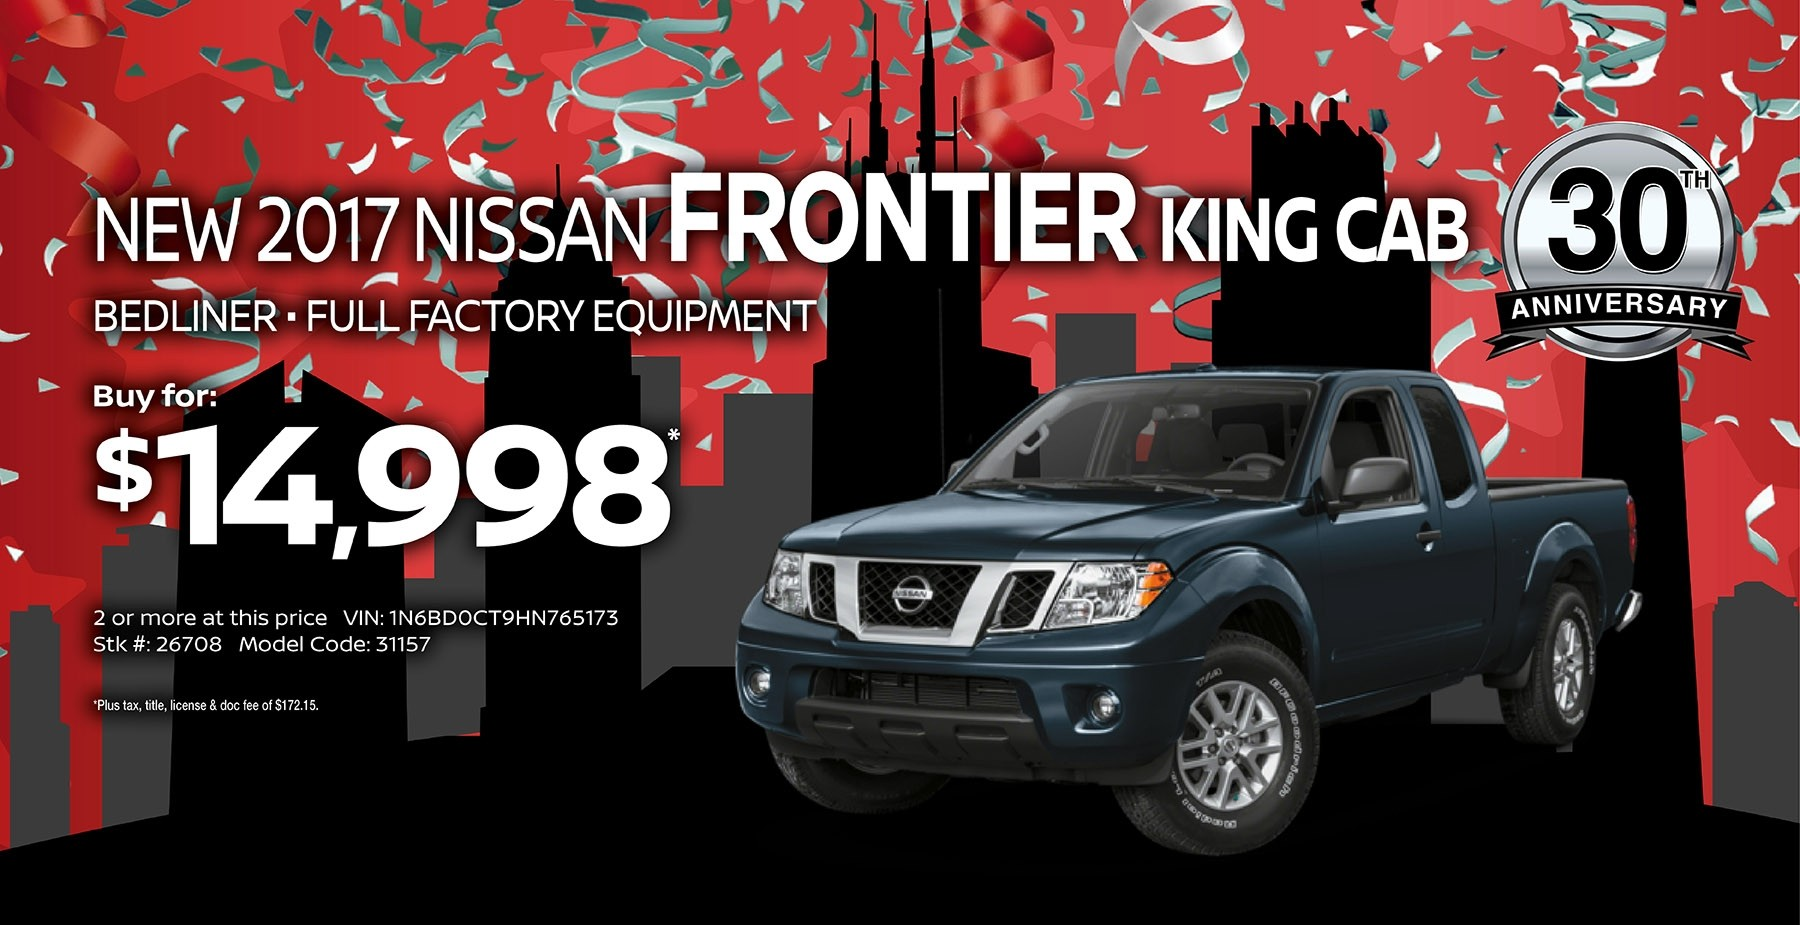 2017 Nissan Frontier September Sale at Star Nissan